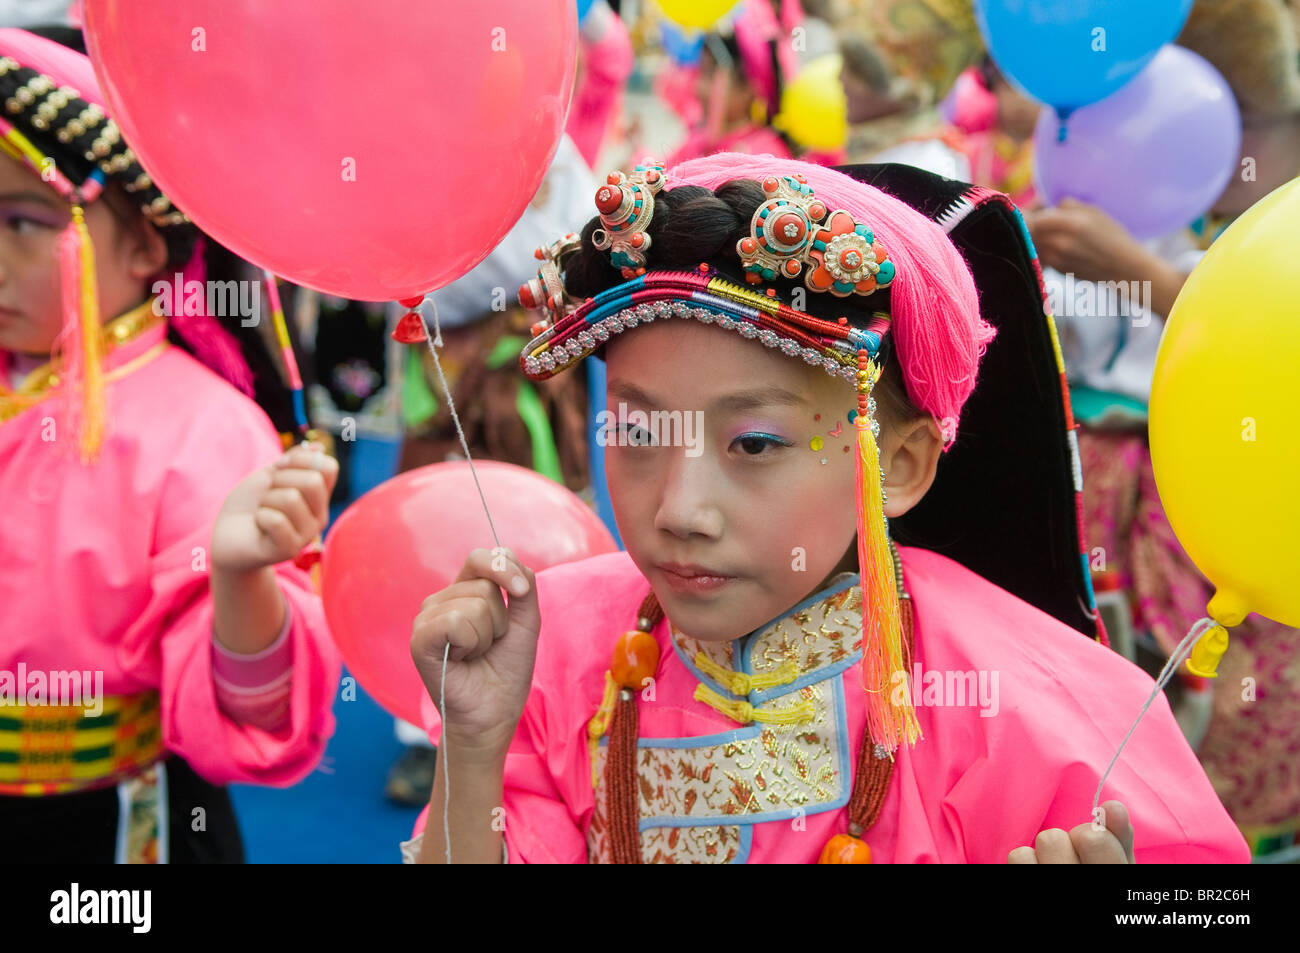 Young girl in ethnic Tibetan costume performs at dance and folk festival, Danba, Sichuan Province, China - Stock Image